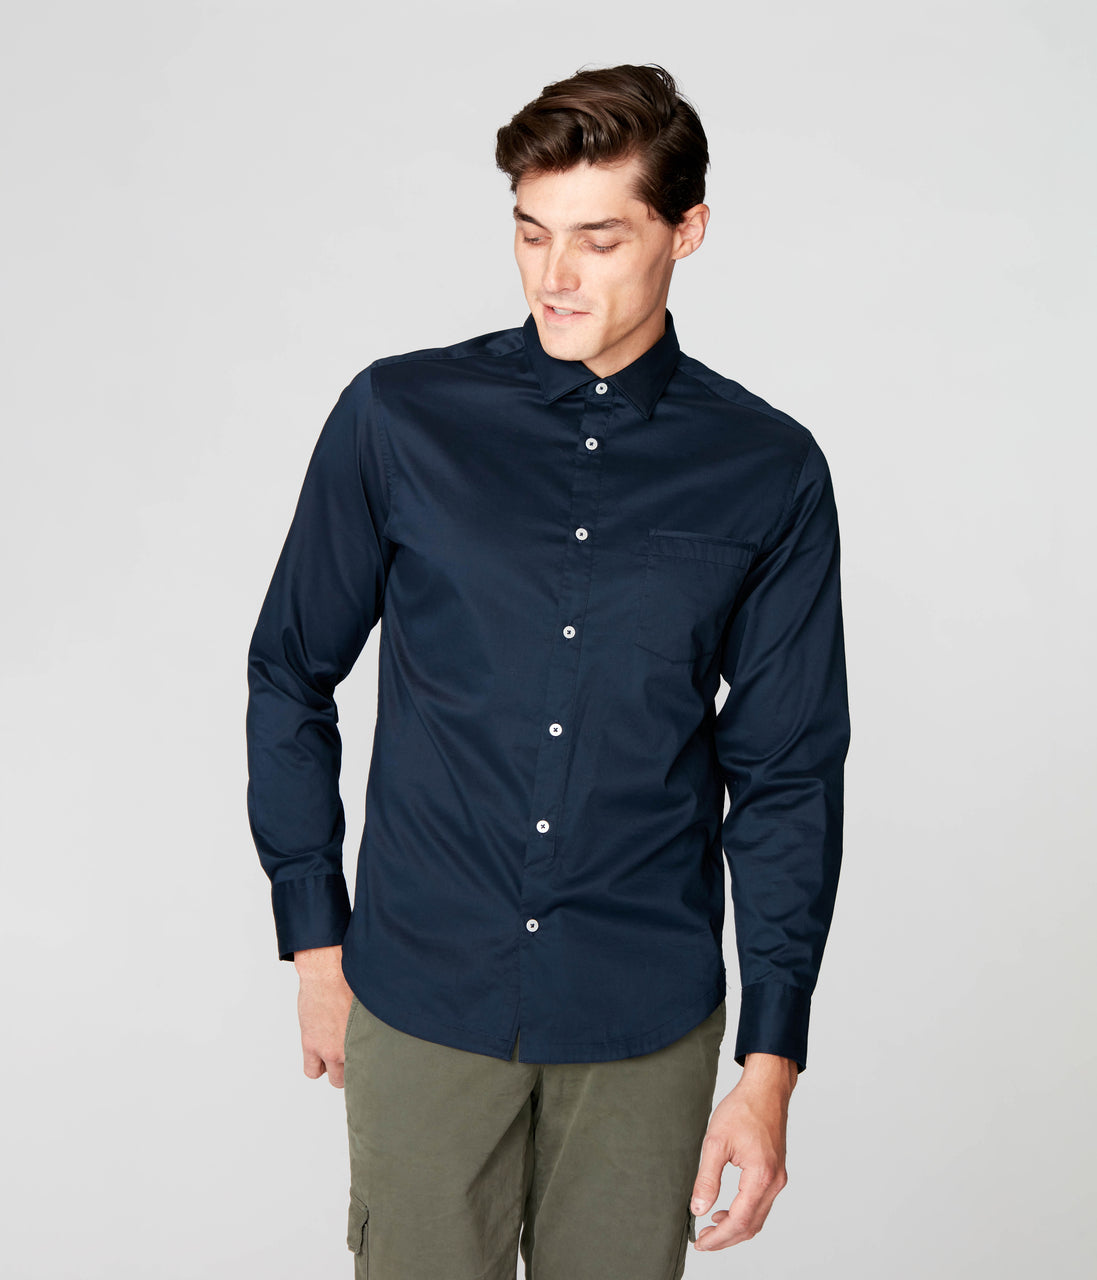 On-Point Solid Shirt - Navy - Good Man Brand - On-Point Solid Shirt - Navy